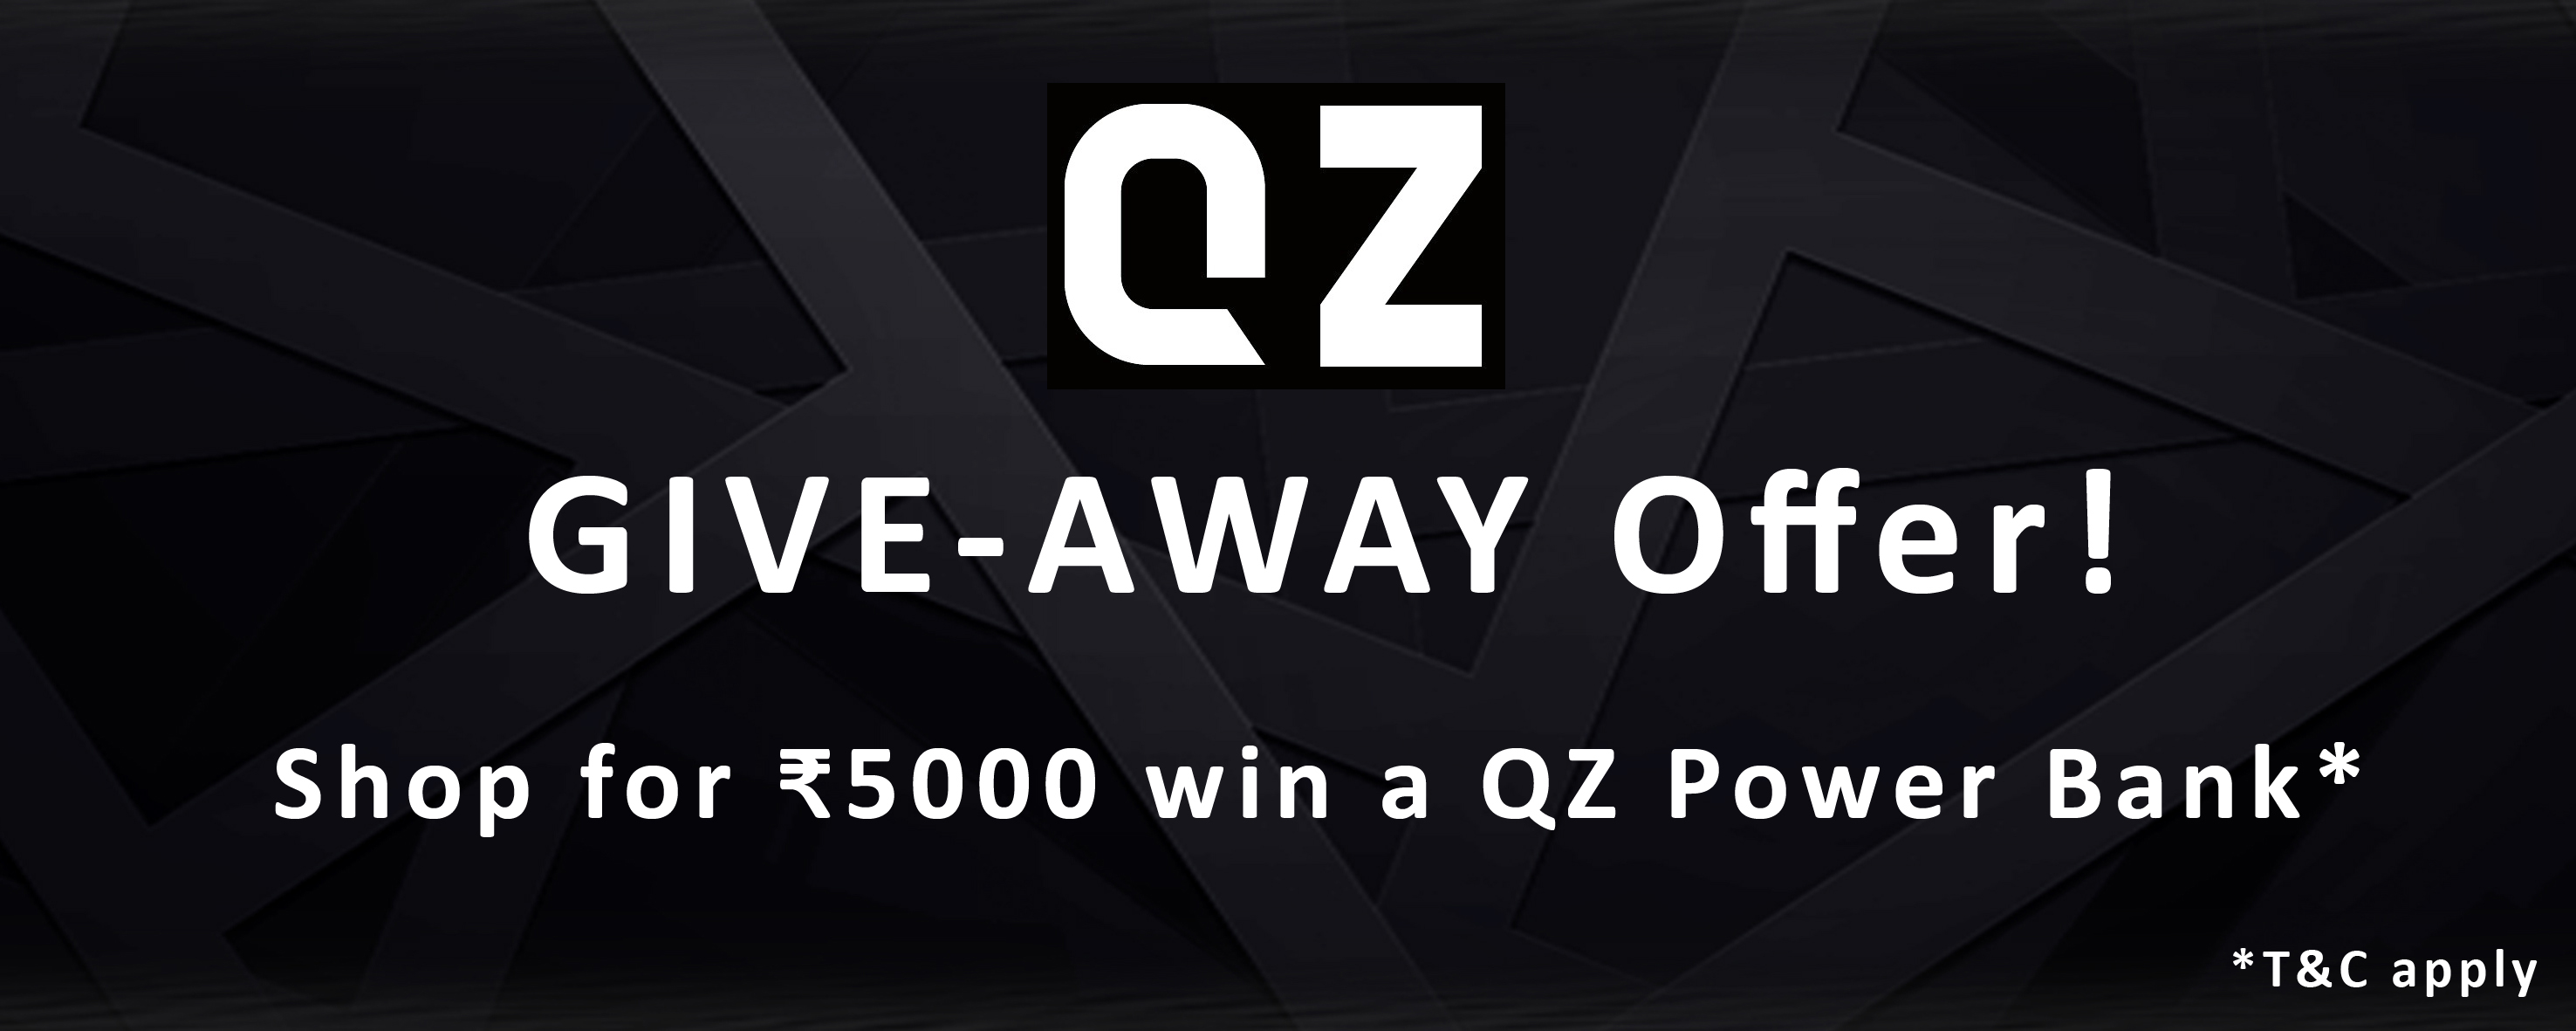 QZ GIVE-AWAY